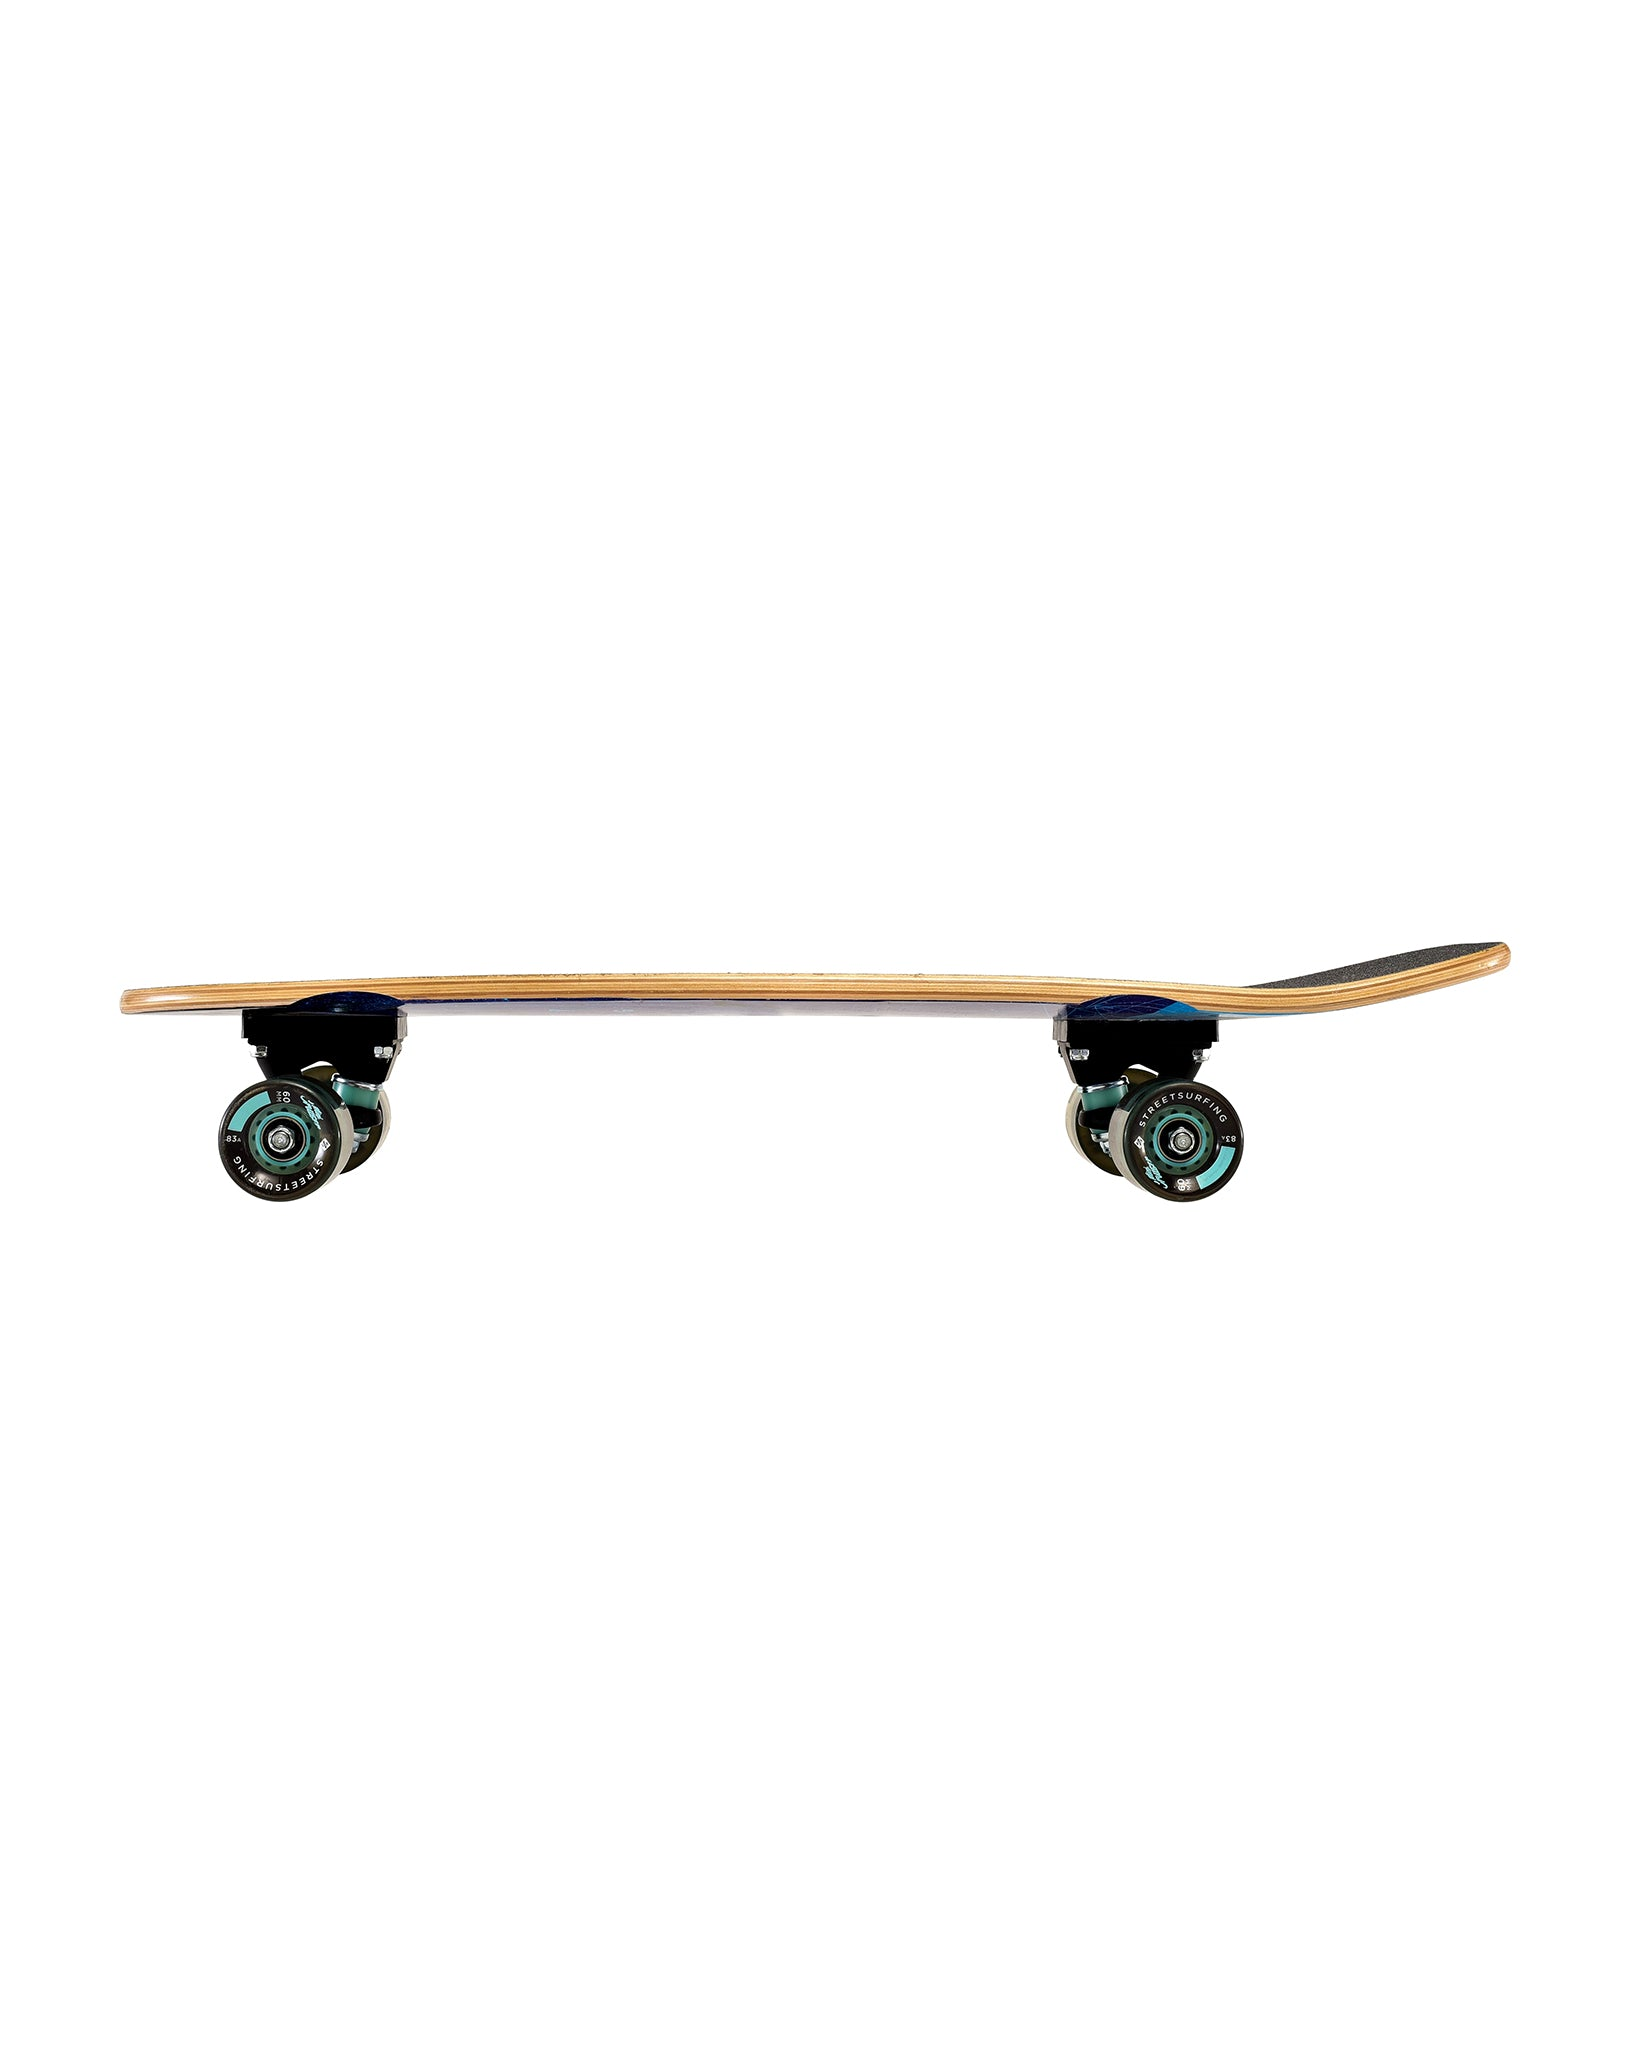 "Cruiser Kicktail 28"" Space Line"